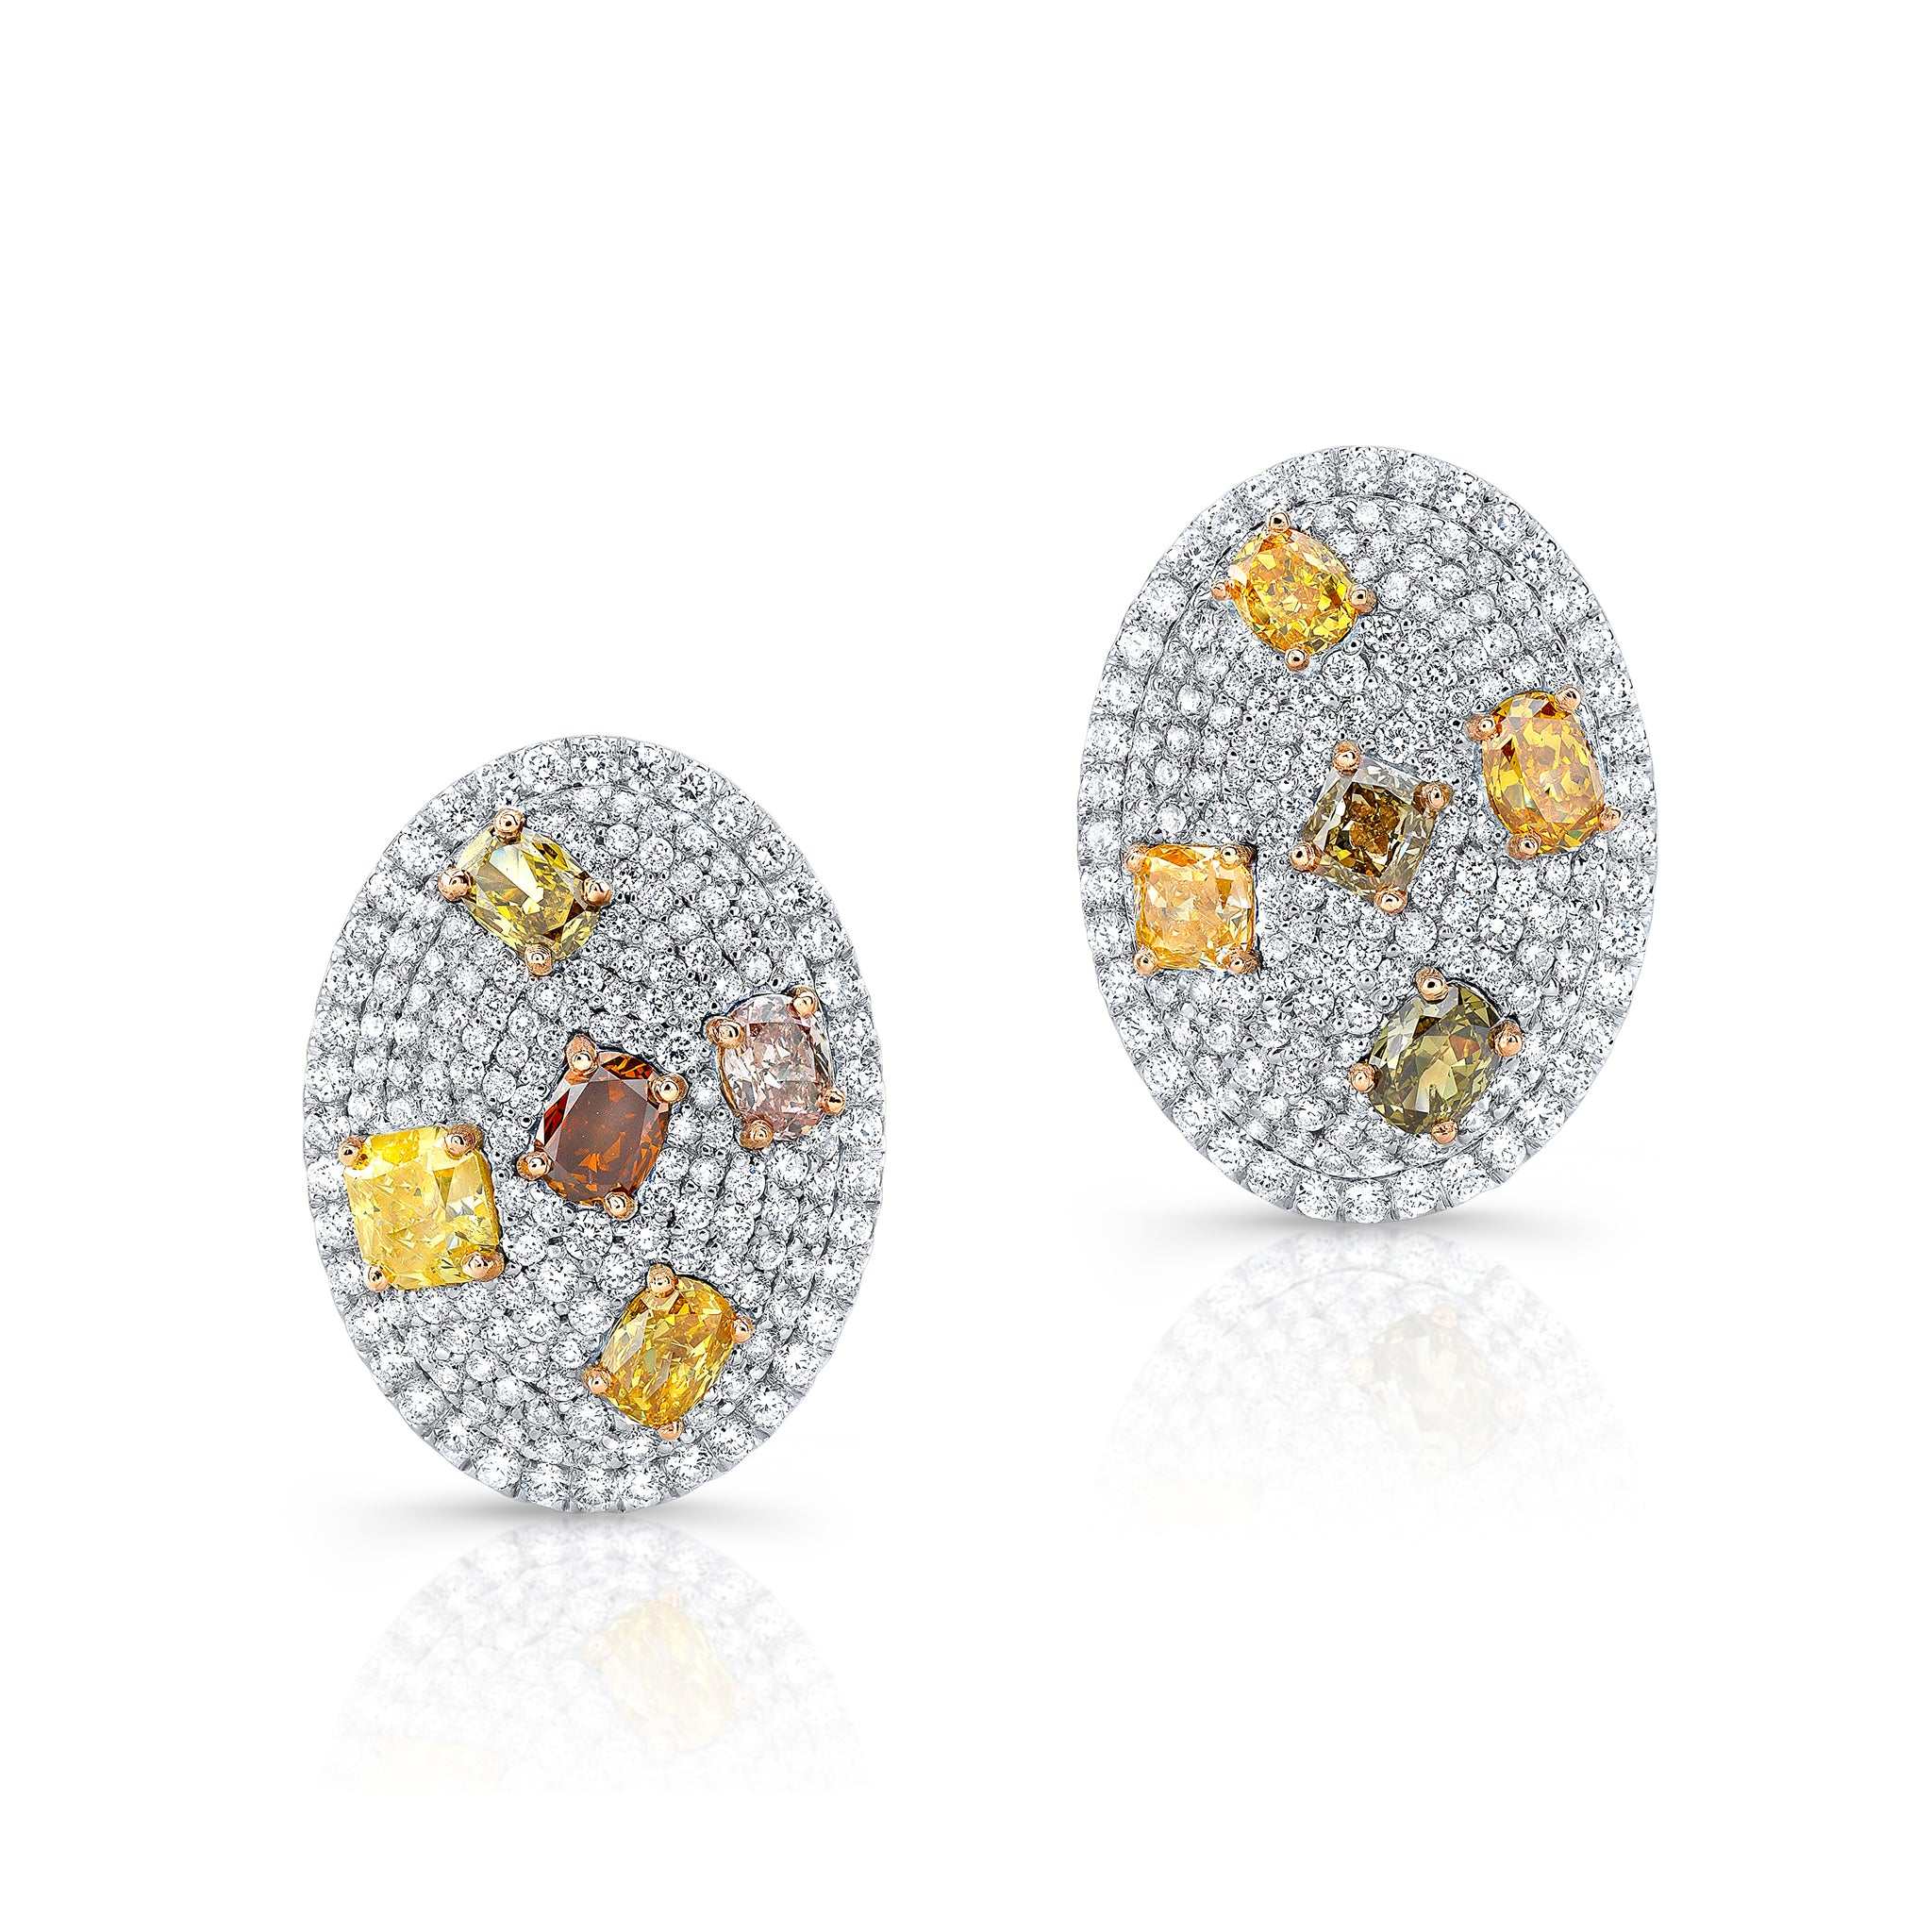 Bespoke Diamond Earrings - Mizrahi Diamonds